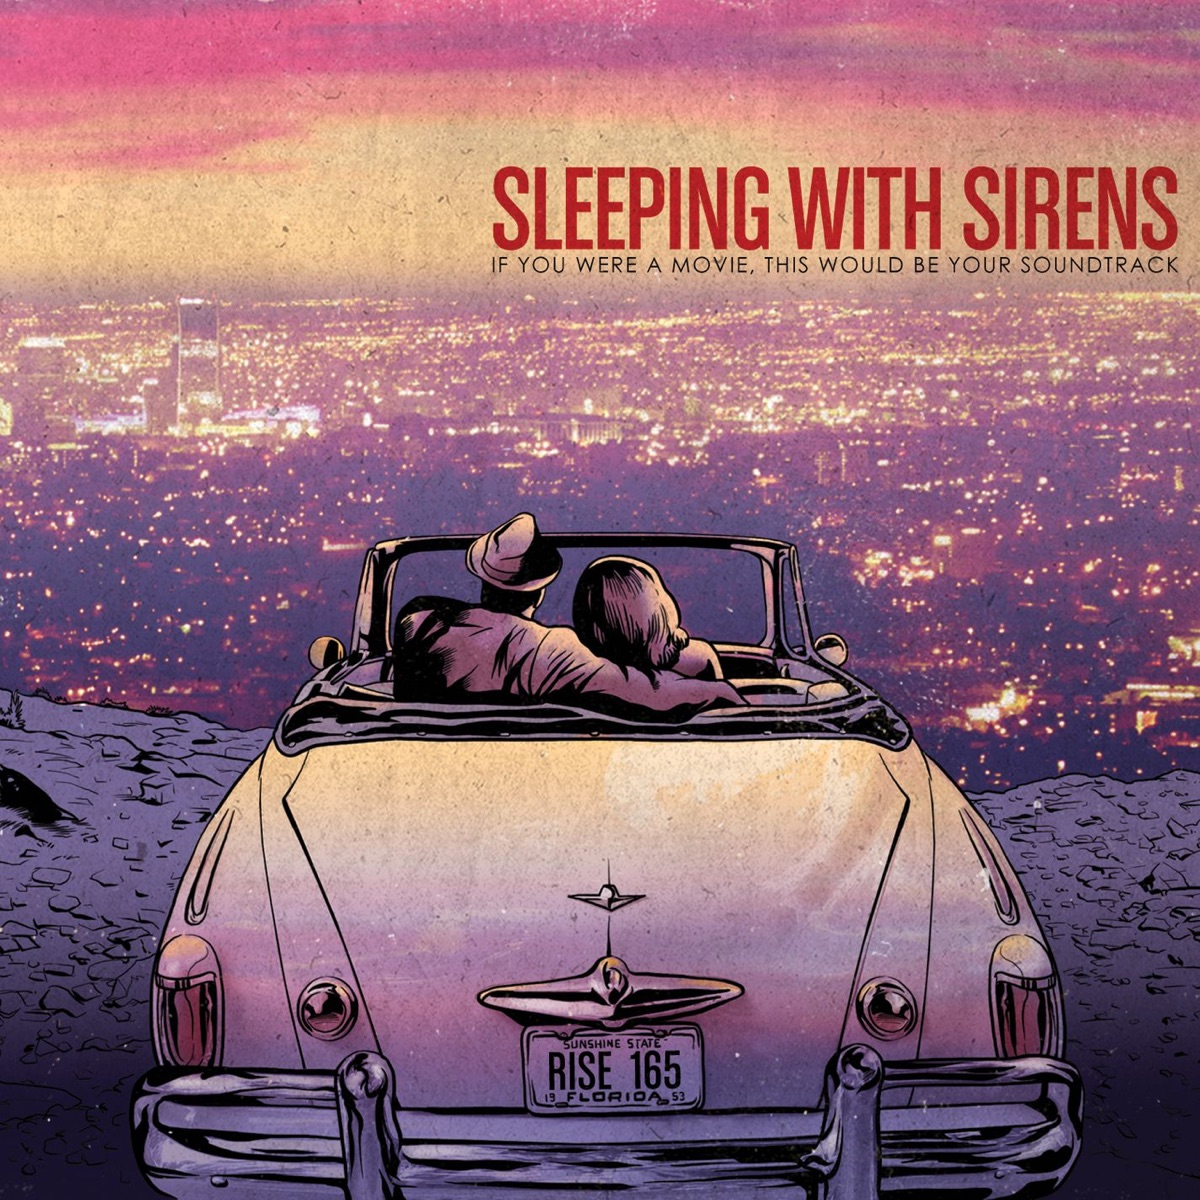 If You Were a Movie This Would Be Your Soundtrack - EP Sleeping With Sirens CD cover